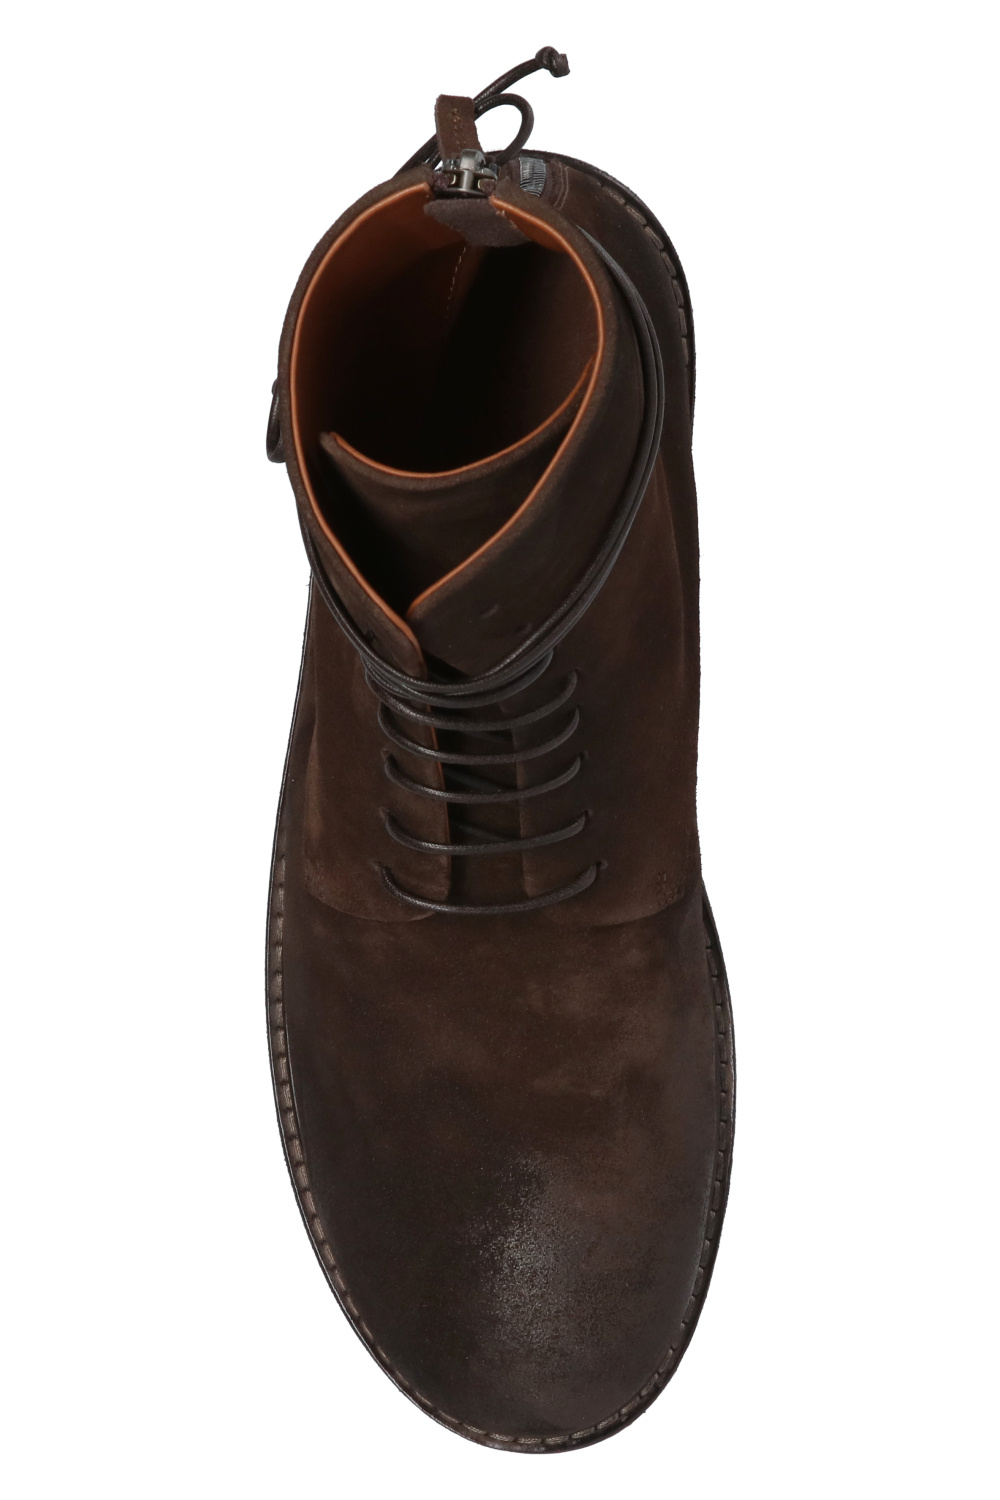 Marsell Suede ankle boots